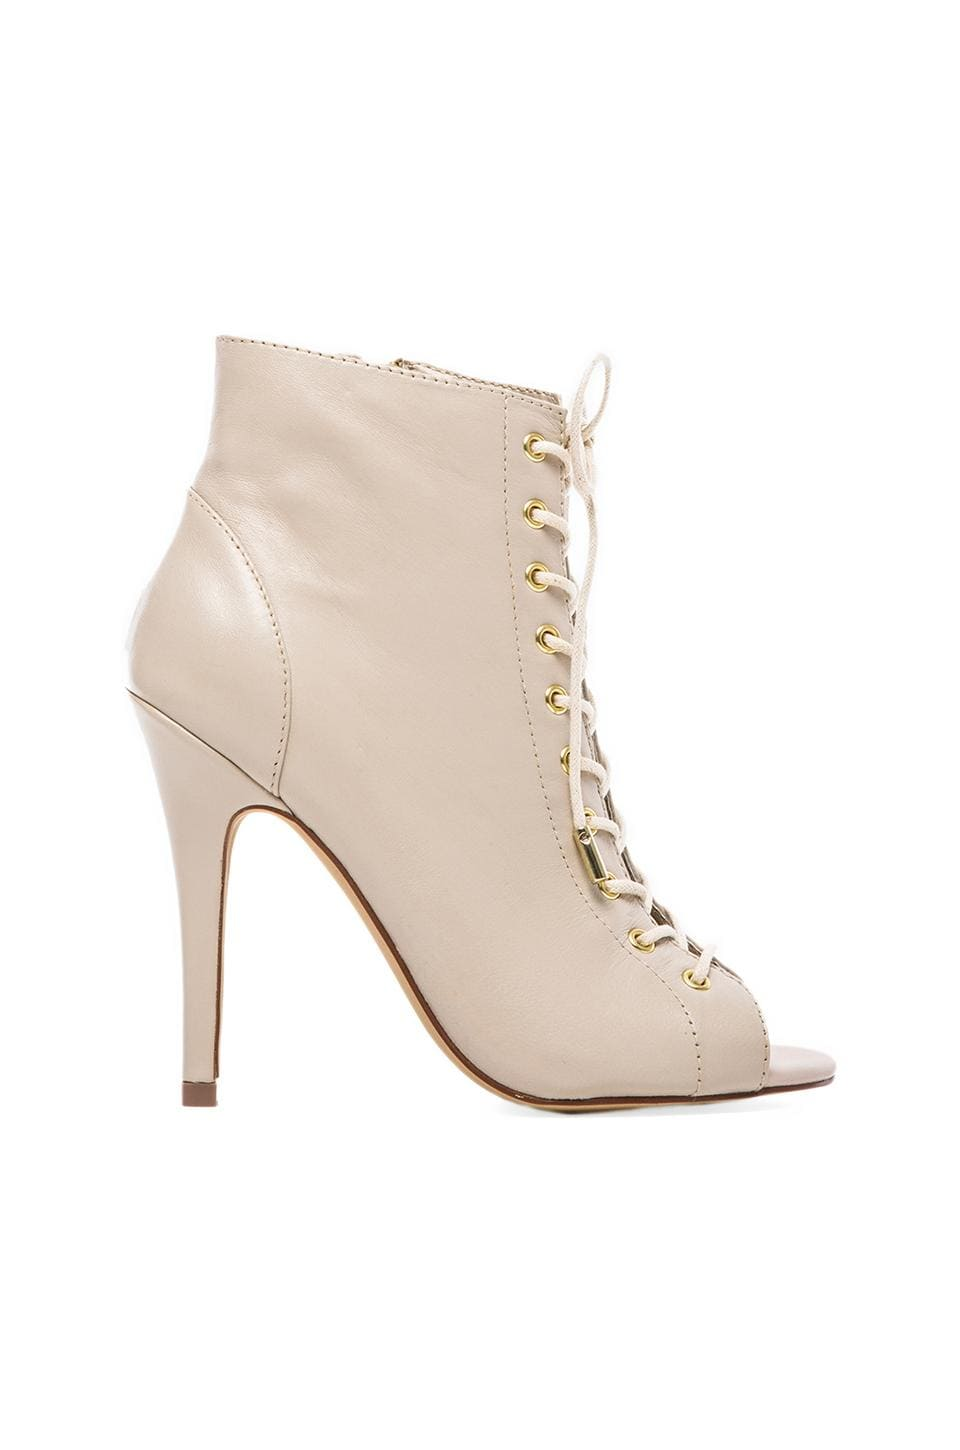 Steve Madden Gladly Bootie in Bone